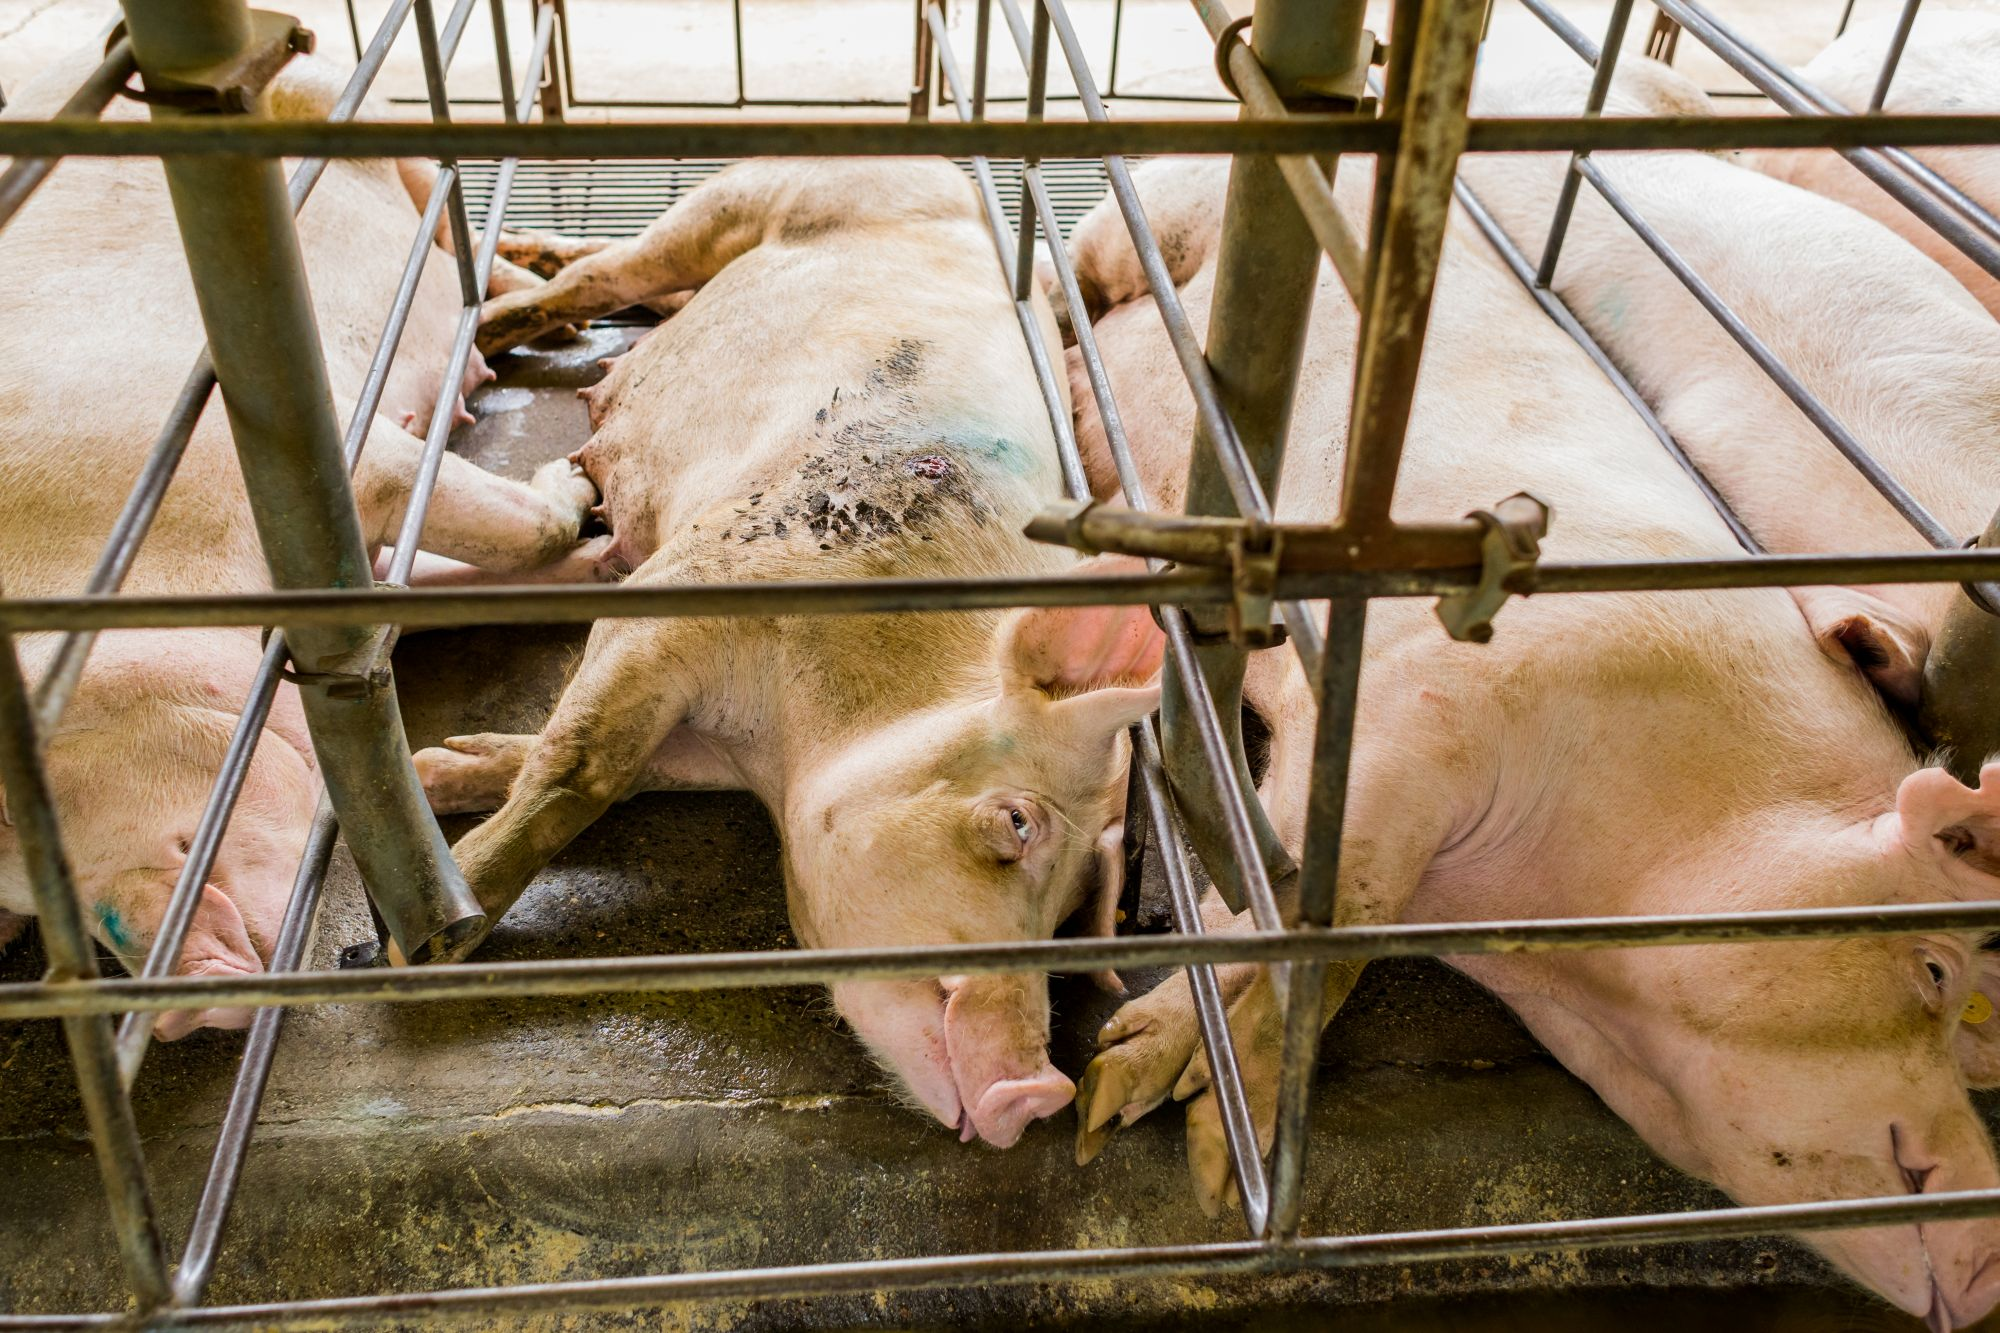 Pig suffering on factory farm